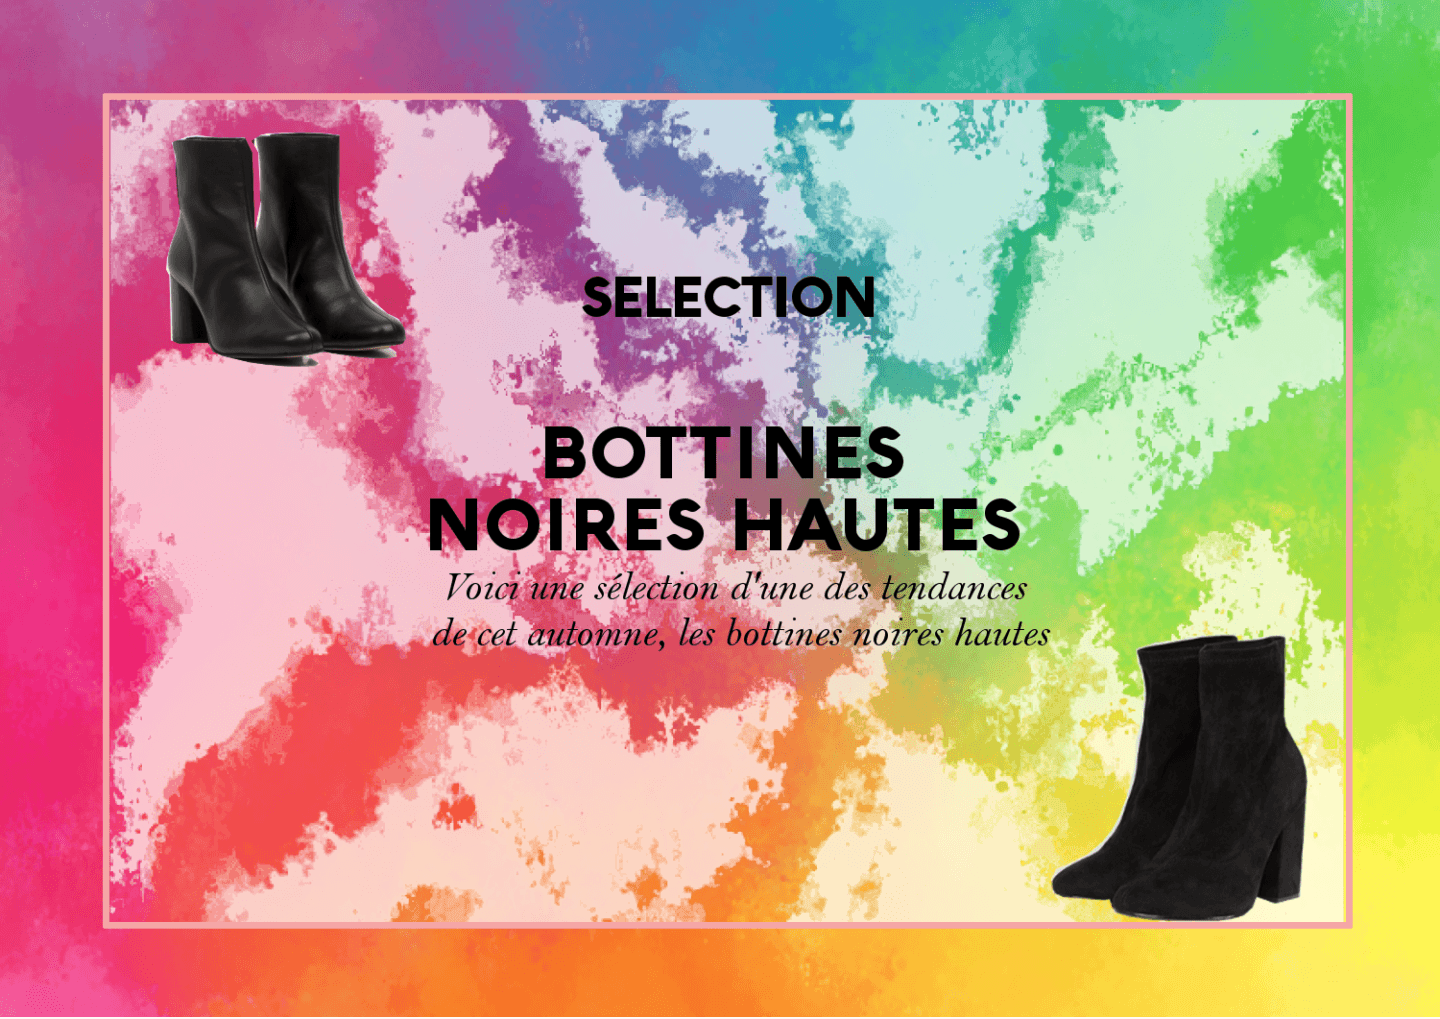 SELECTION #1 : BOTTINES NOIRES HAUTES